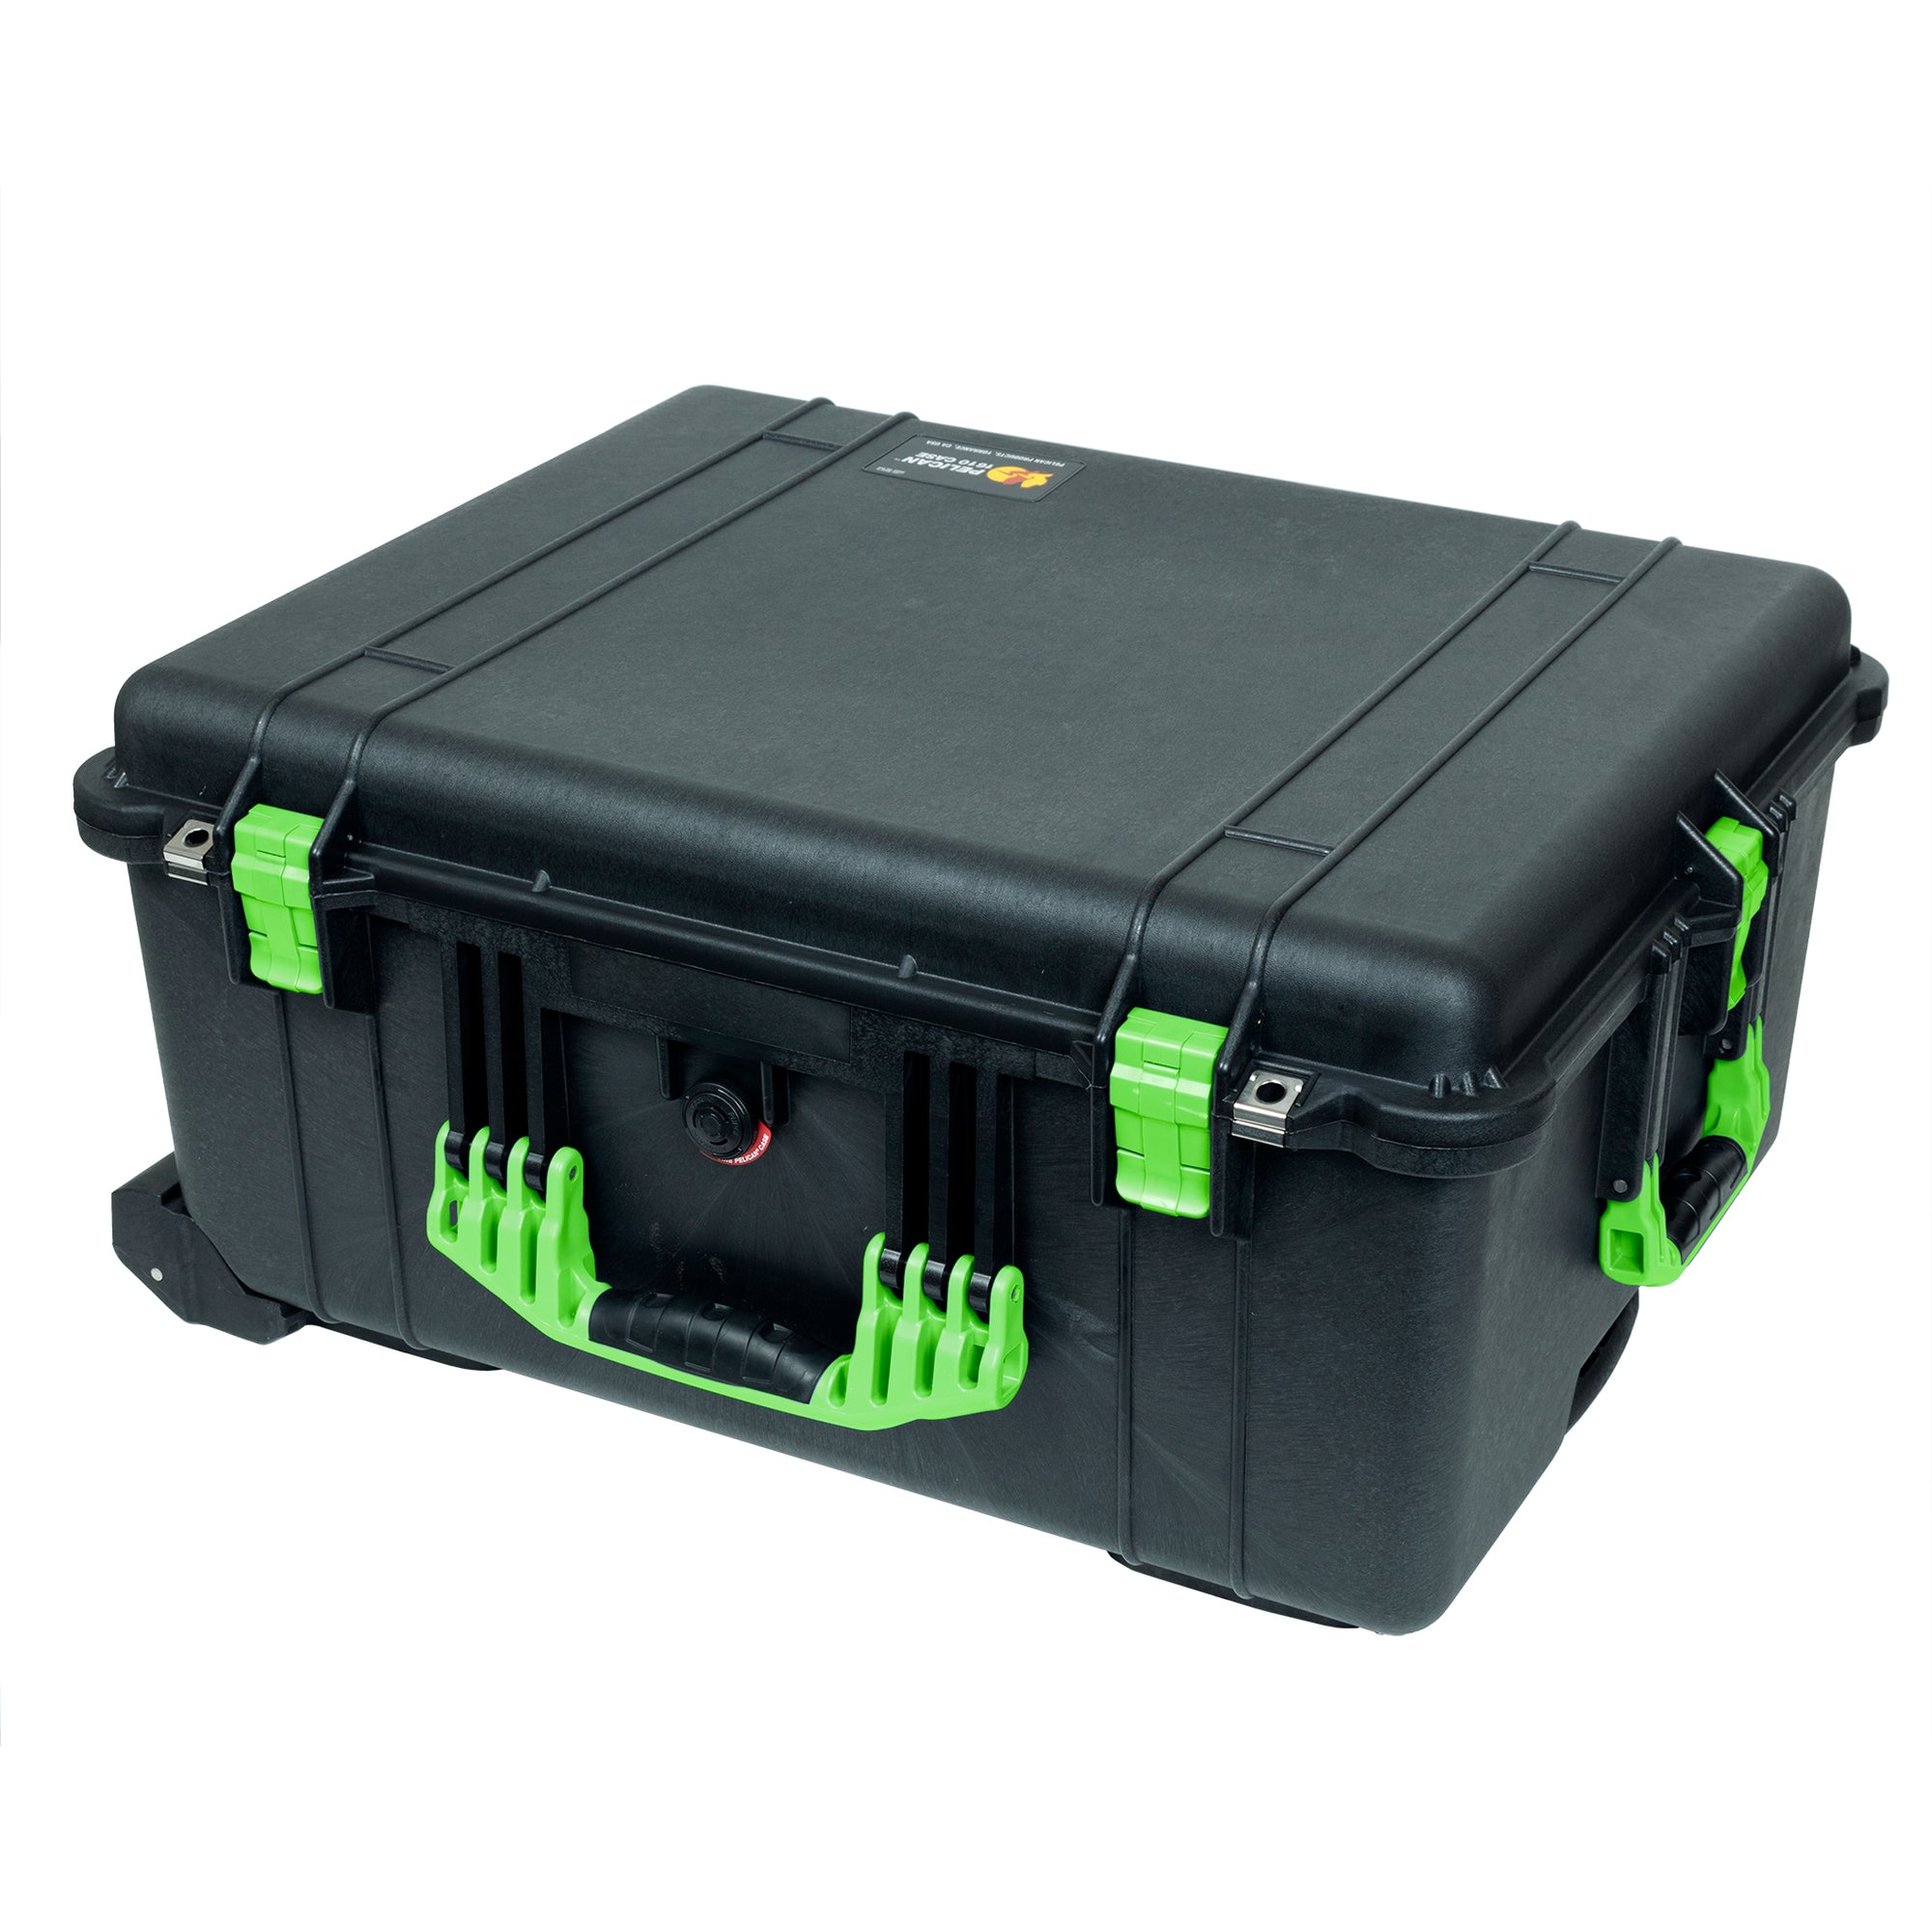 Pelican 1620 Case, Black with Lime Green Handles & Latches